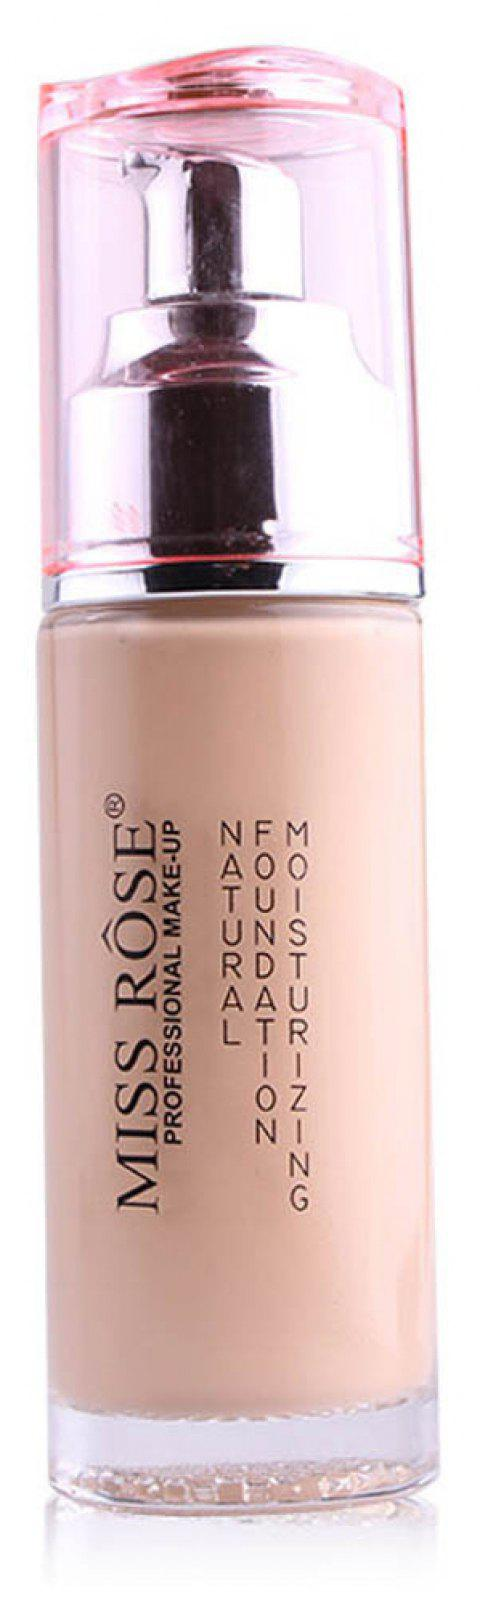 MISS ROSE Silver Bottle Concealer Liquid Foundation - 002